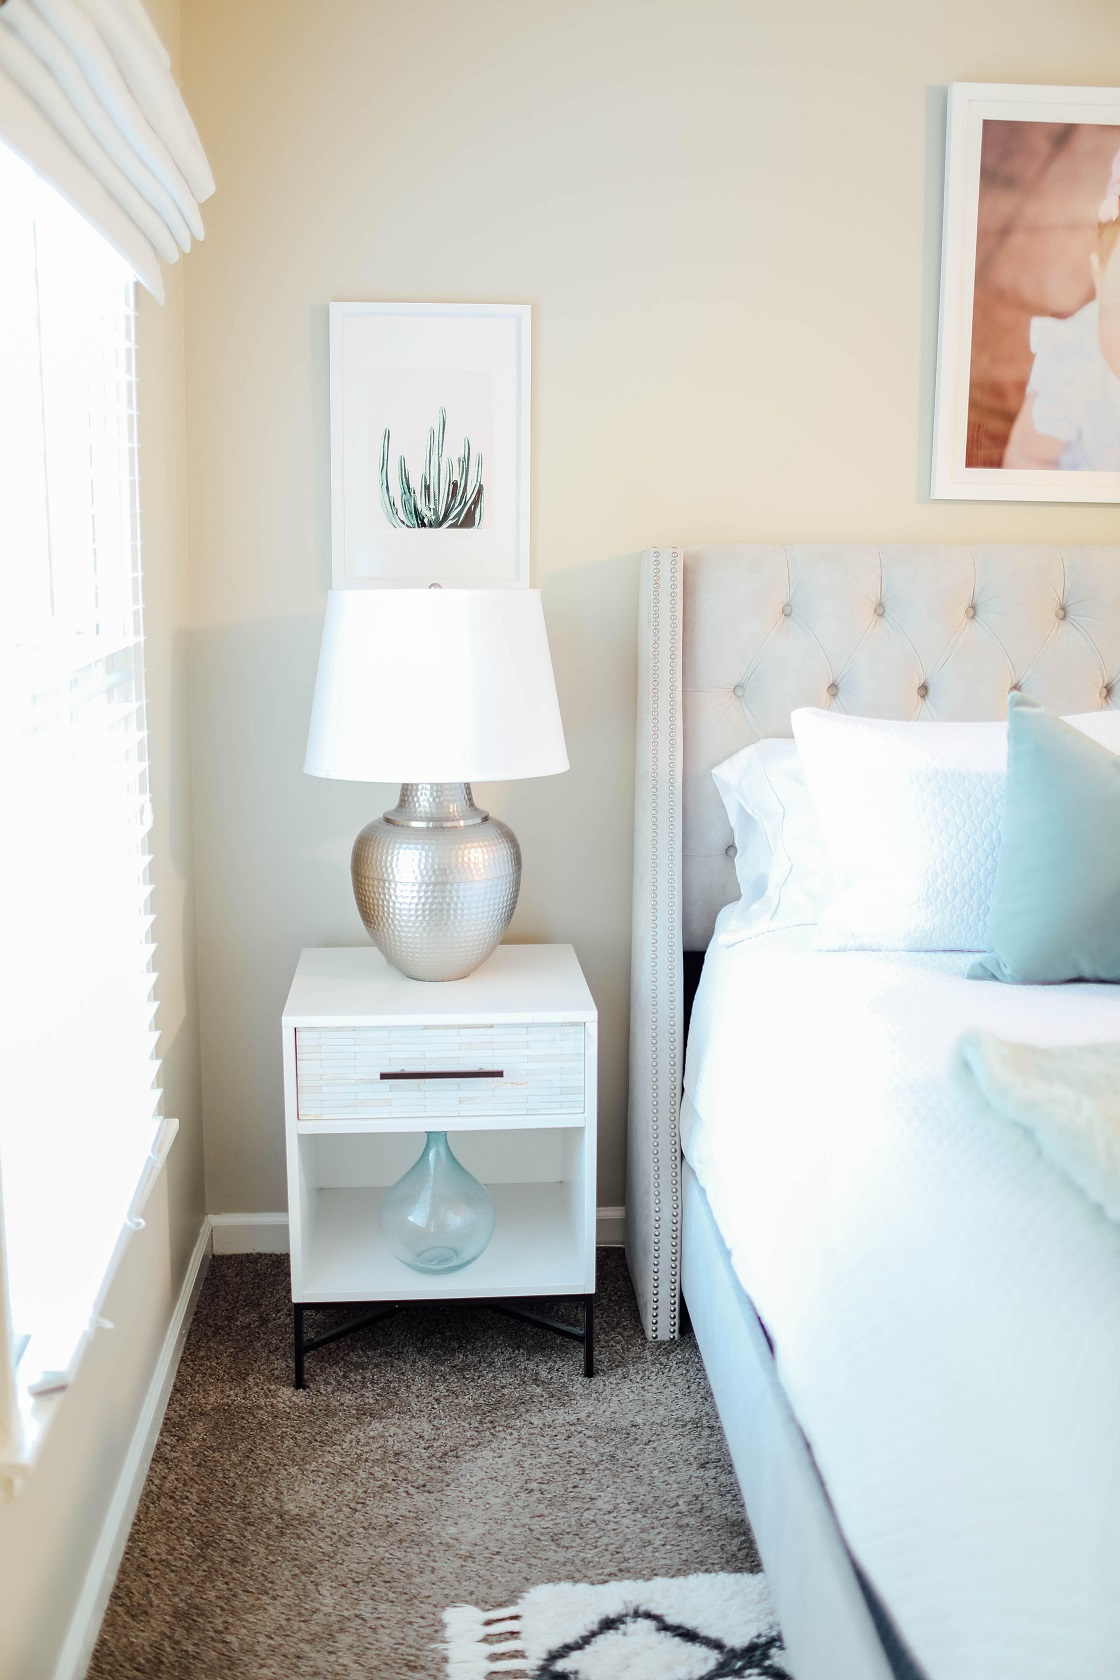 My Master Bedroom & Bathroom Updates for Summer